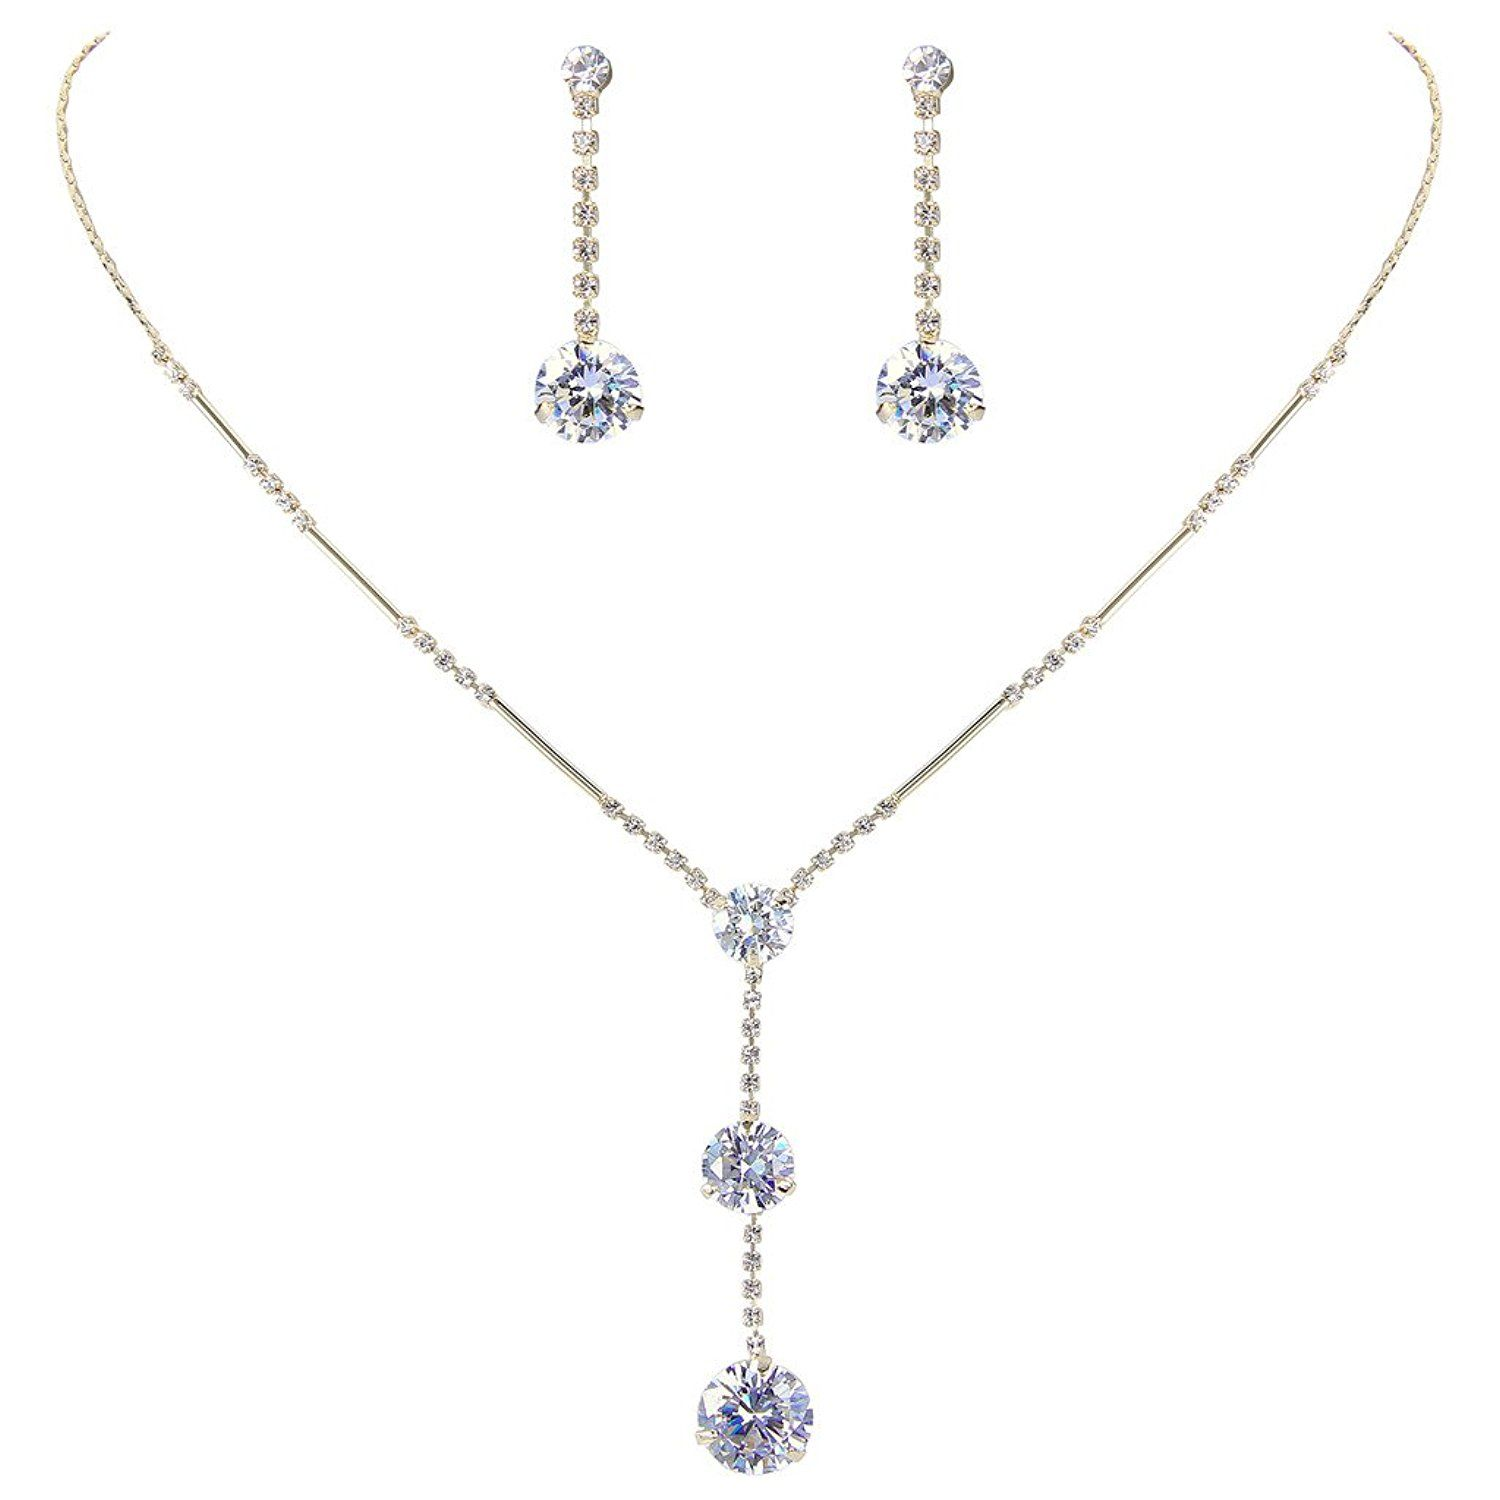 Elequeen womenus long bridal ball necklace earrings set adorned with